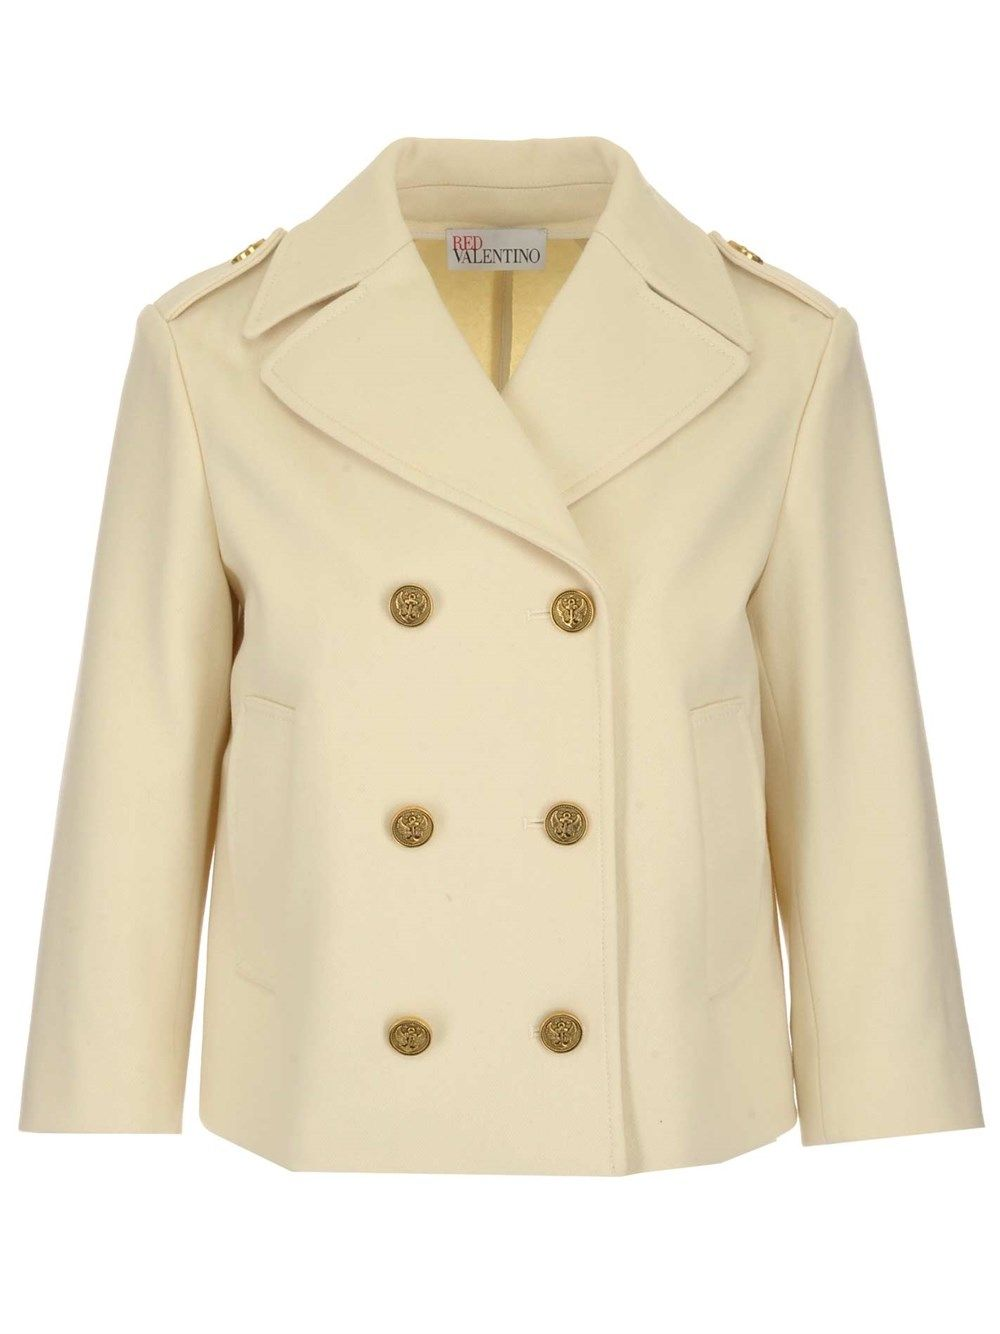 Red Valentino RED VALENTINO WOMEN'S BEIGE OTHER MATERIALS COAT